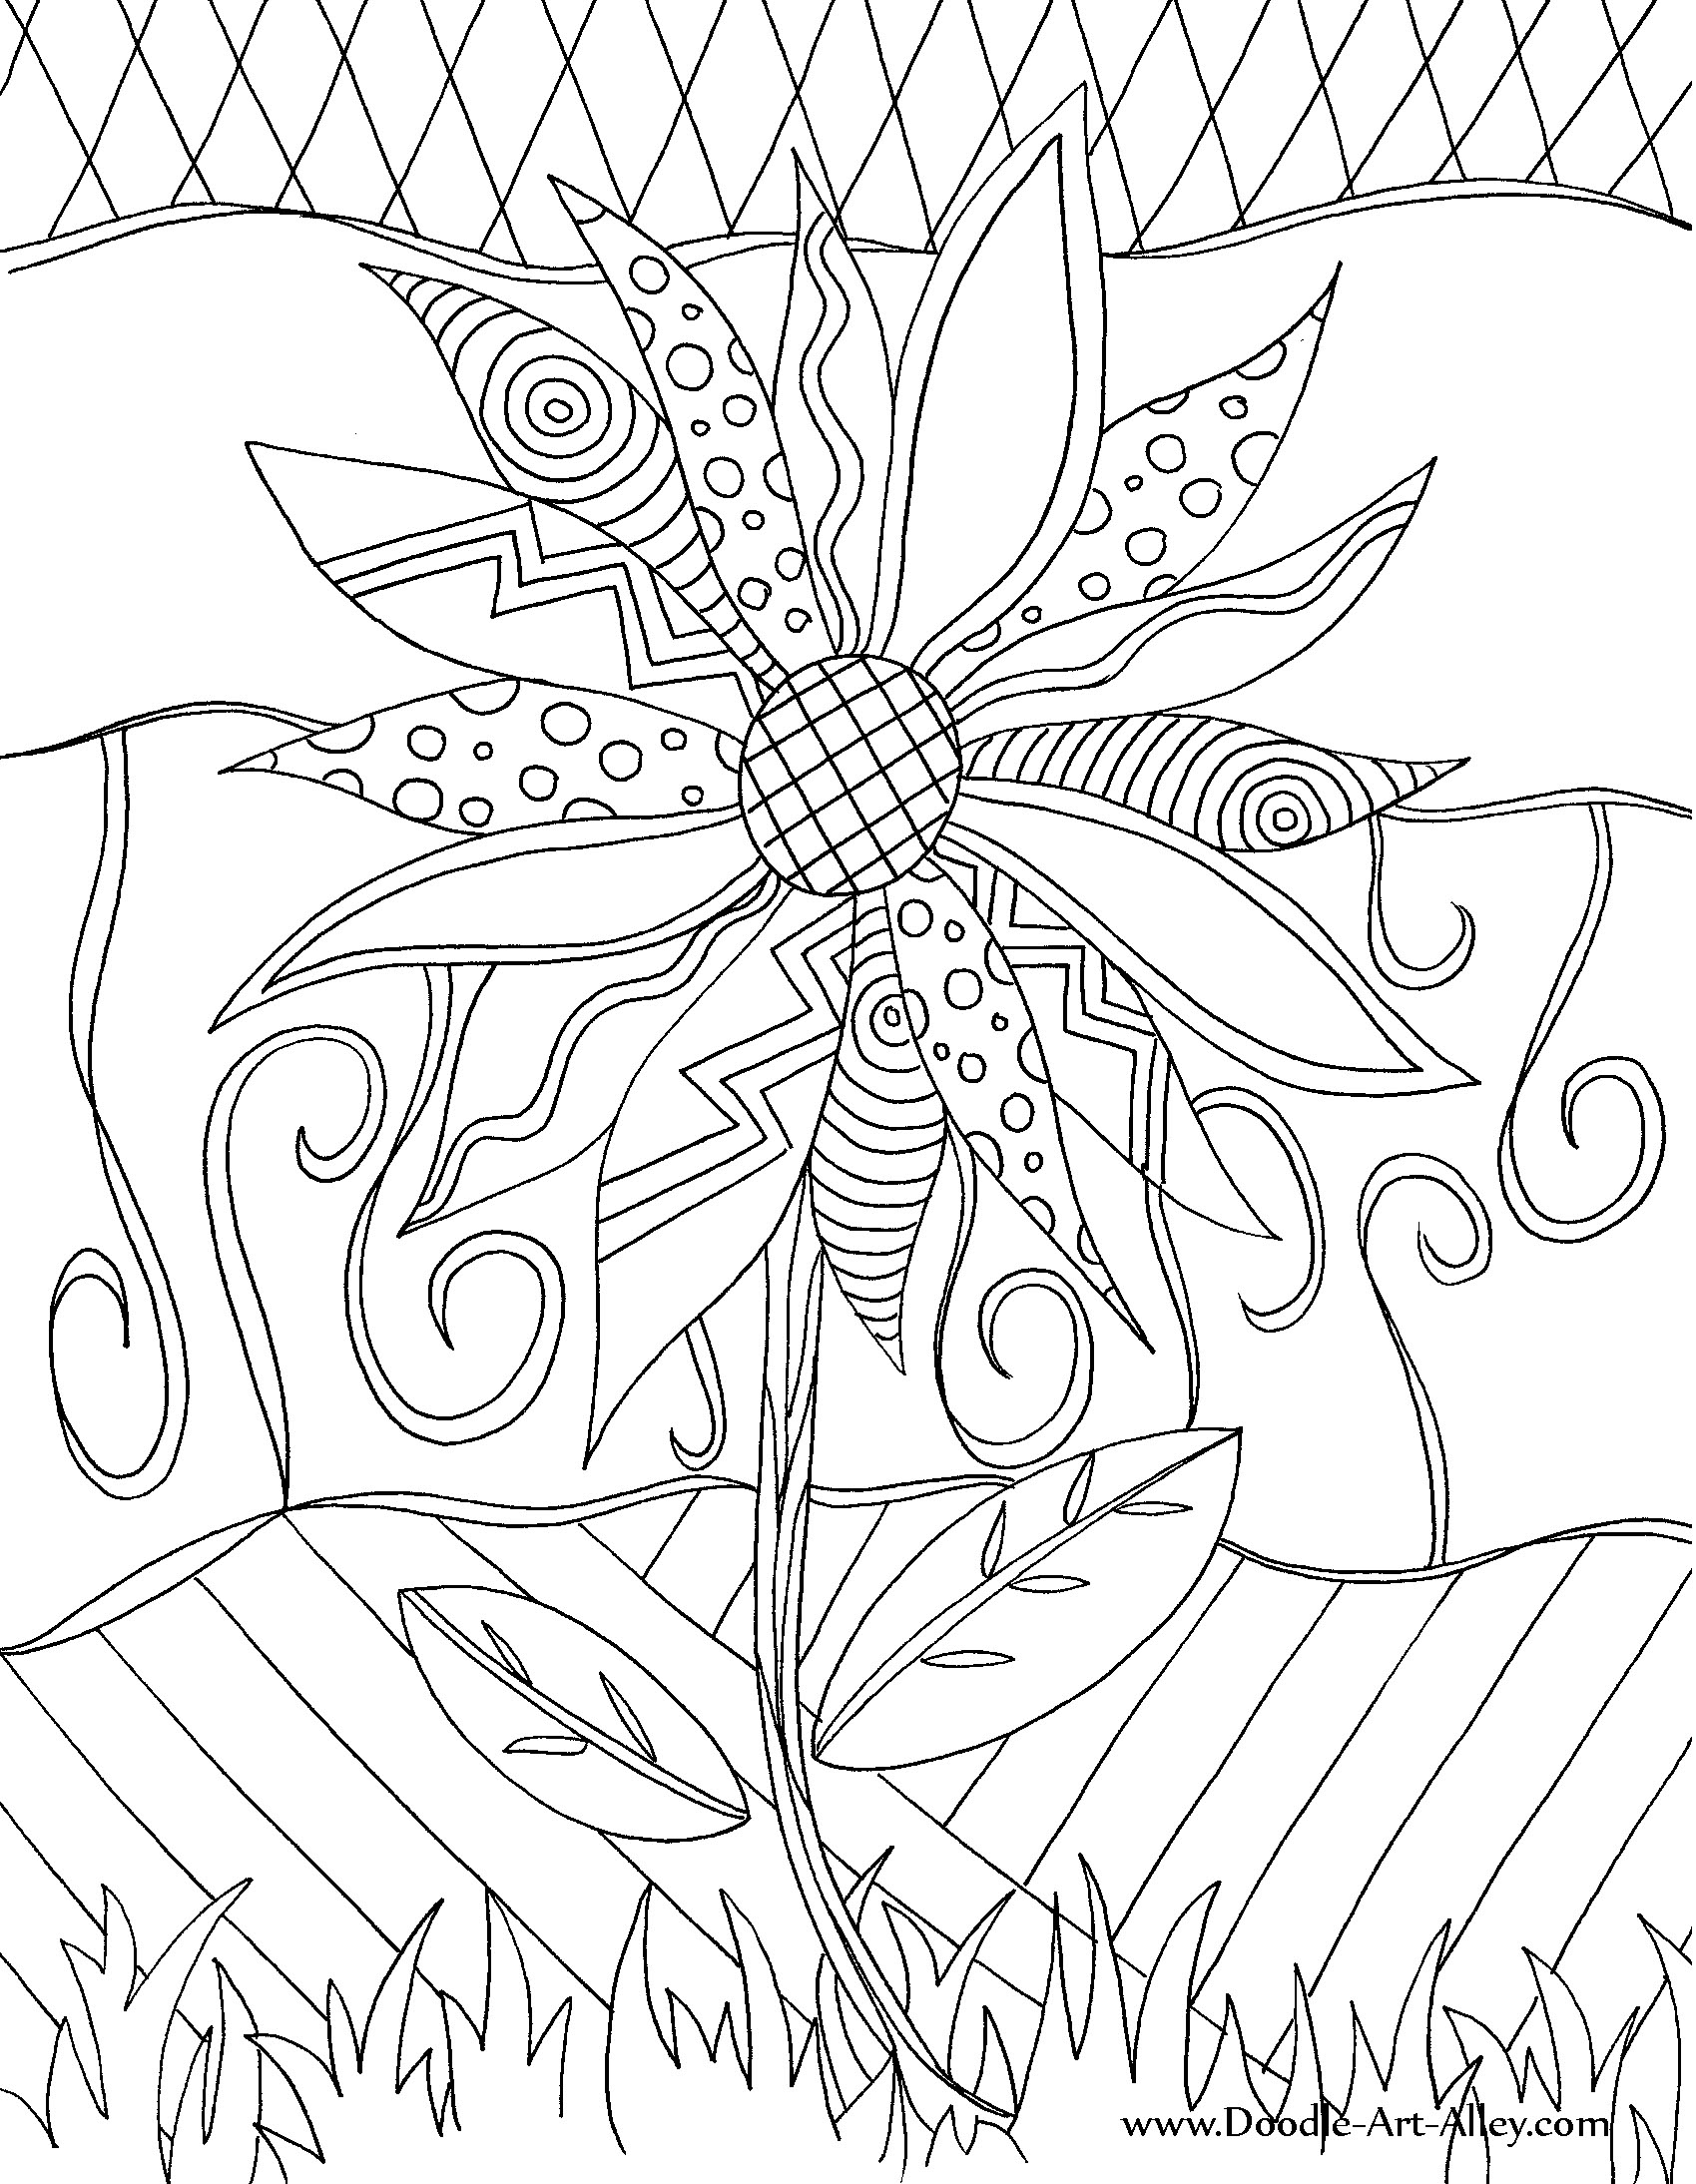 Doodle pages true self for Art is fun coloring pages